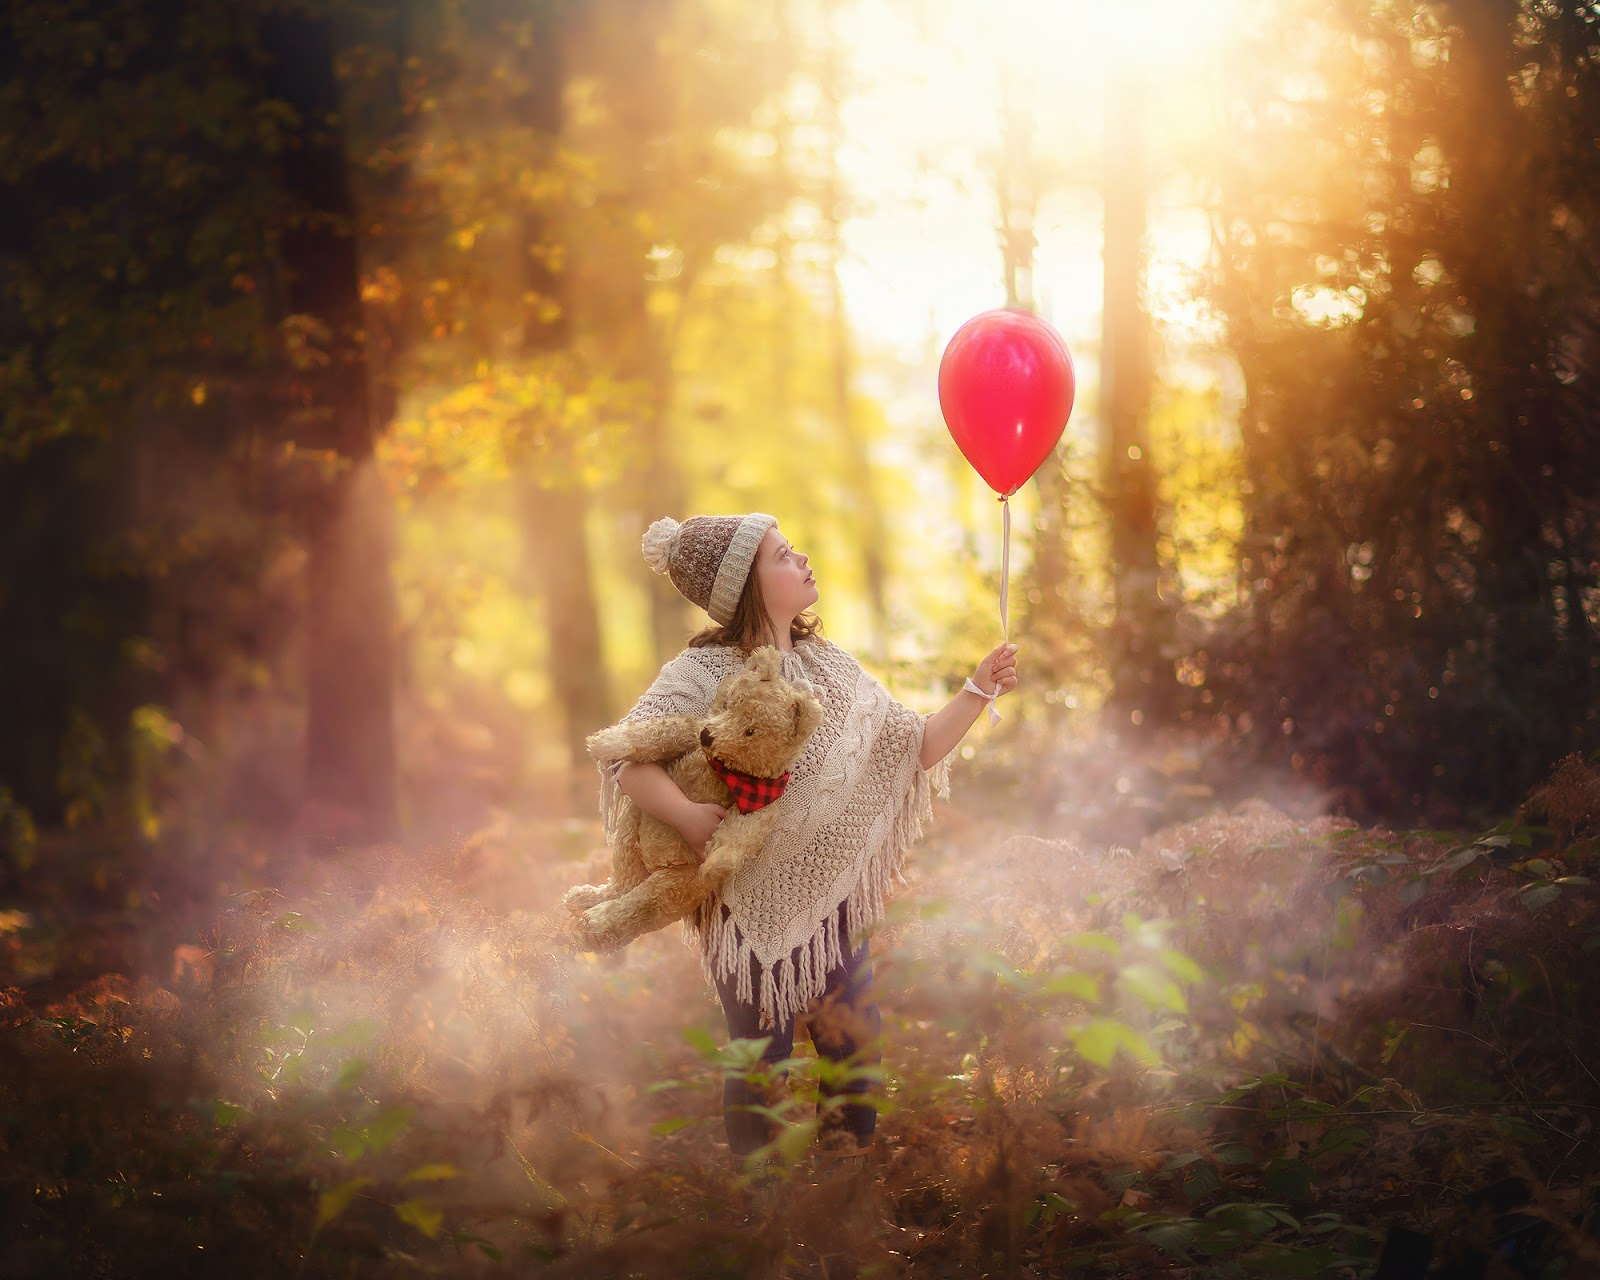 fine art autumn portrait of a child and a teddy bear holding a red balloon during sunset by Willie Kers